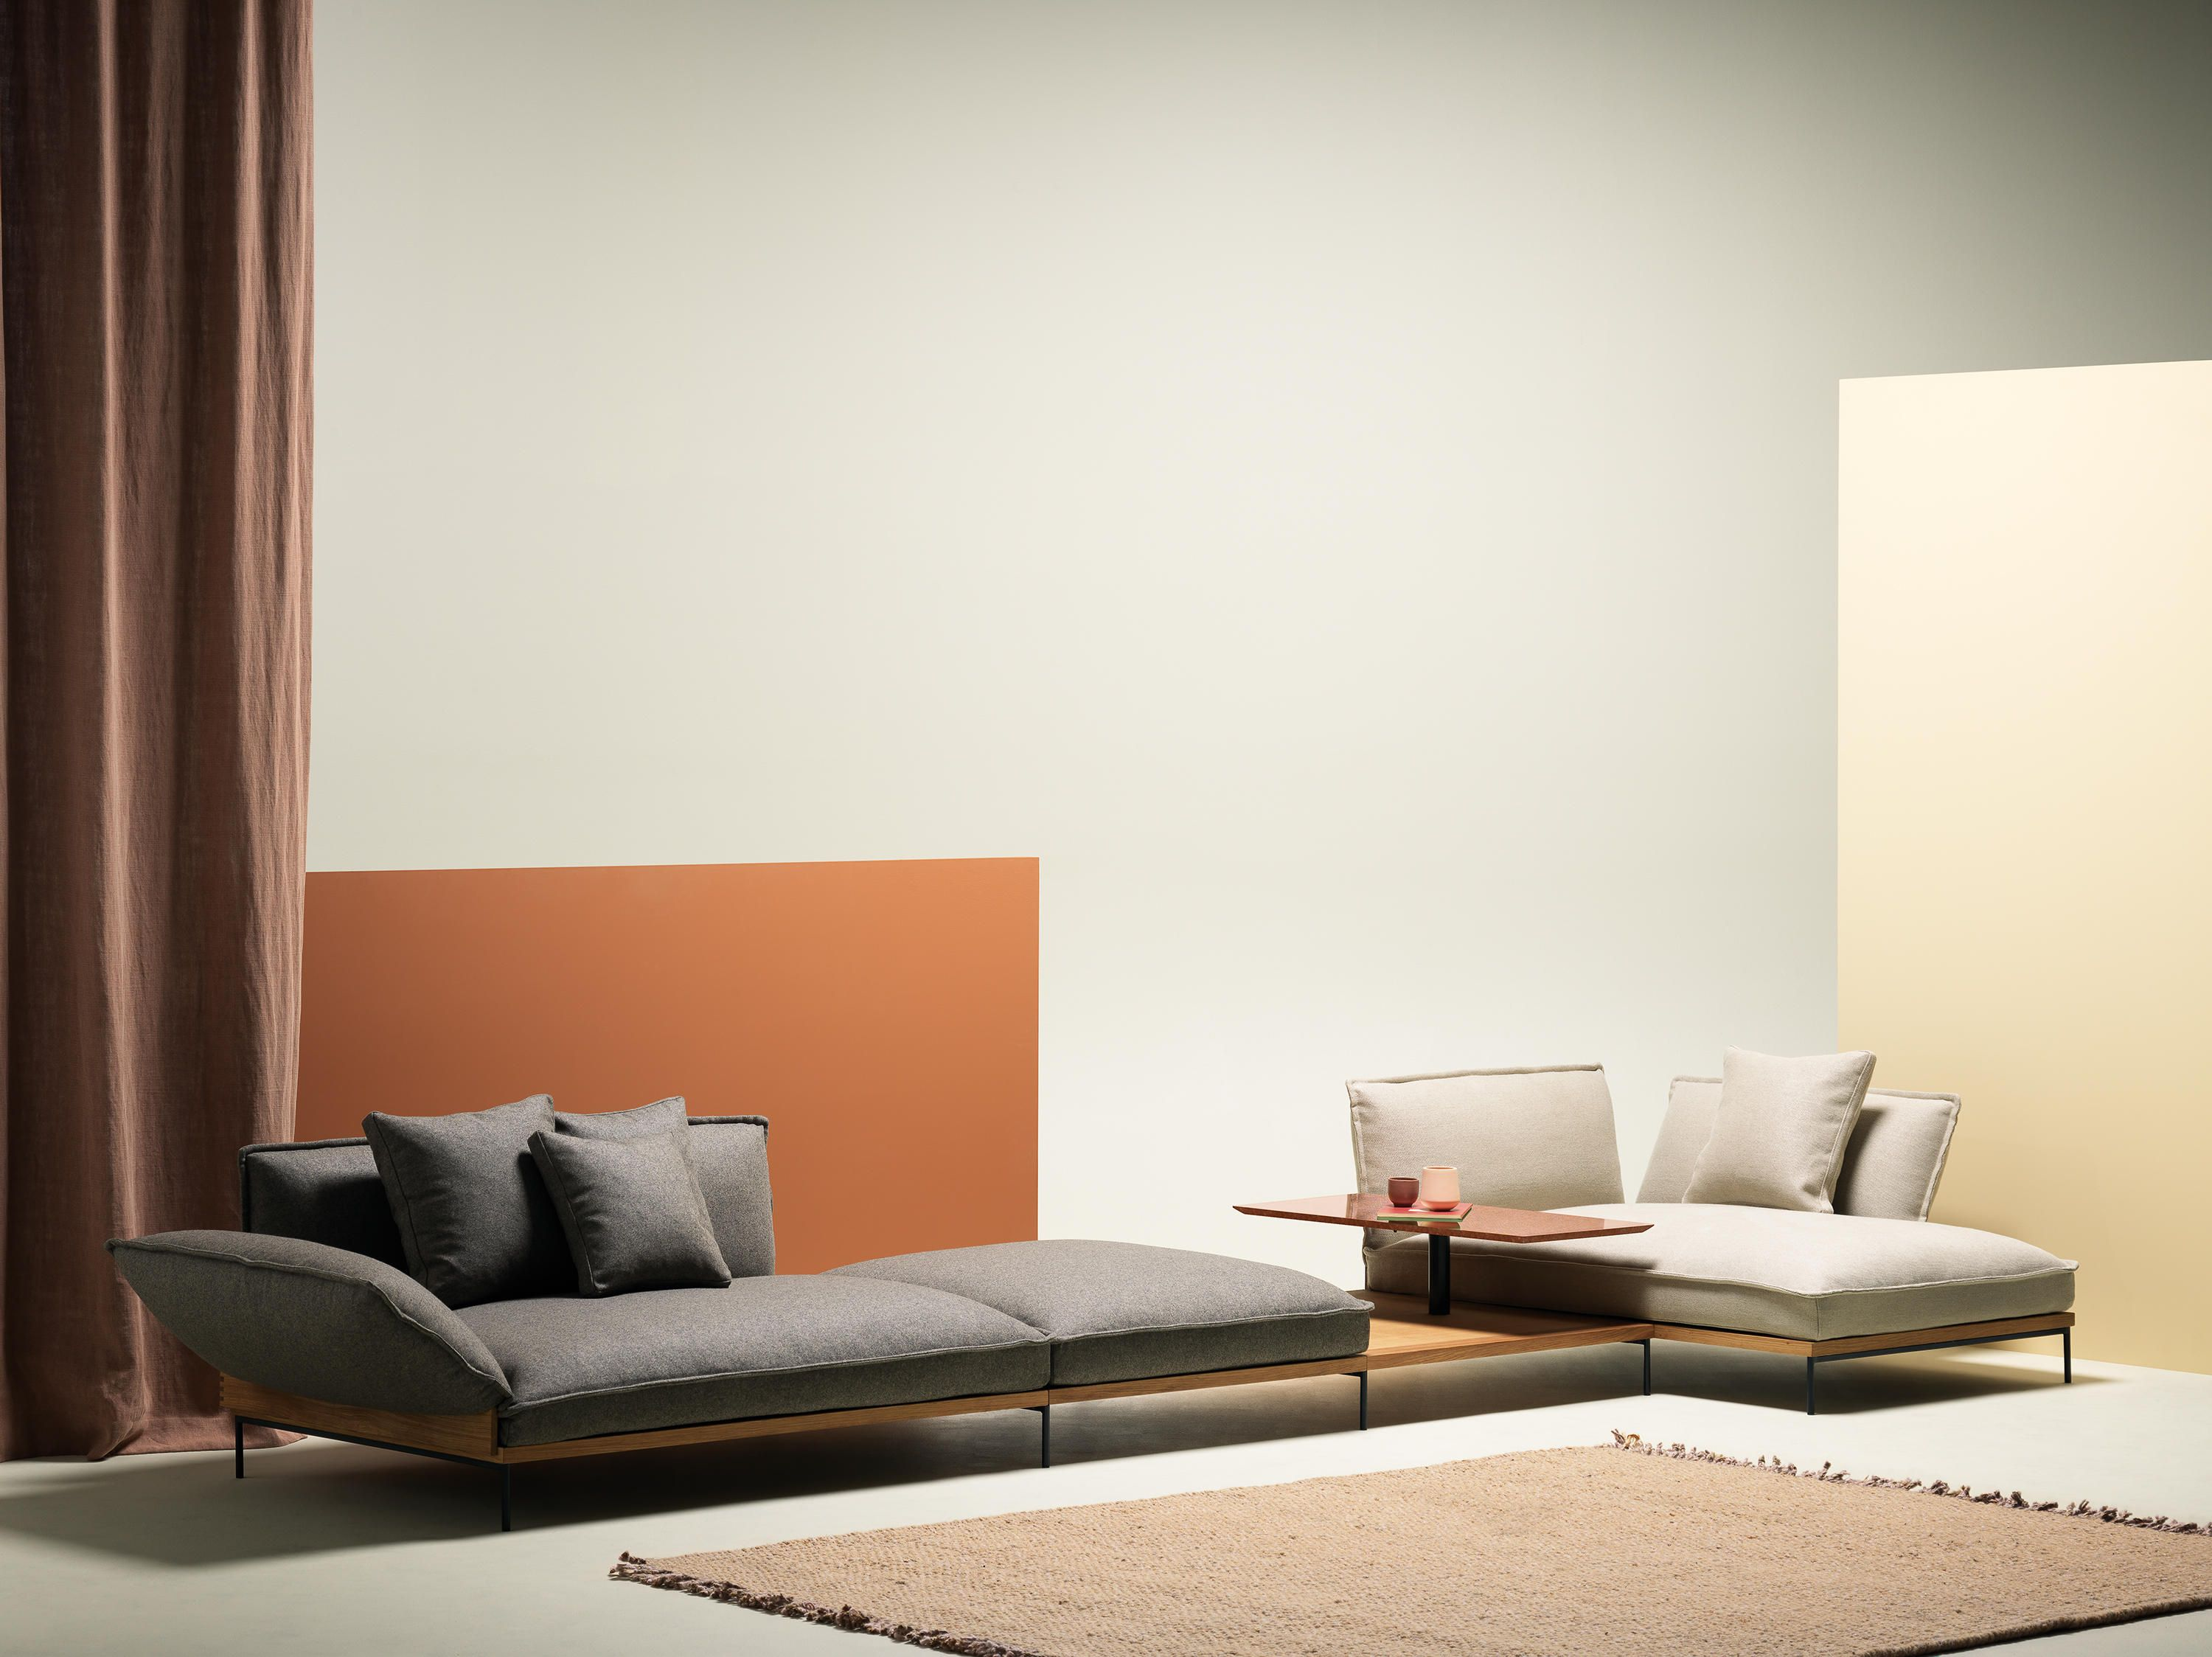 - Jord Double Chaise Lounge By Fogia Lounge Chair Design, Sofa